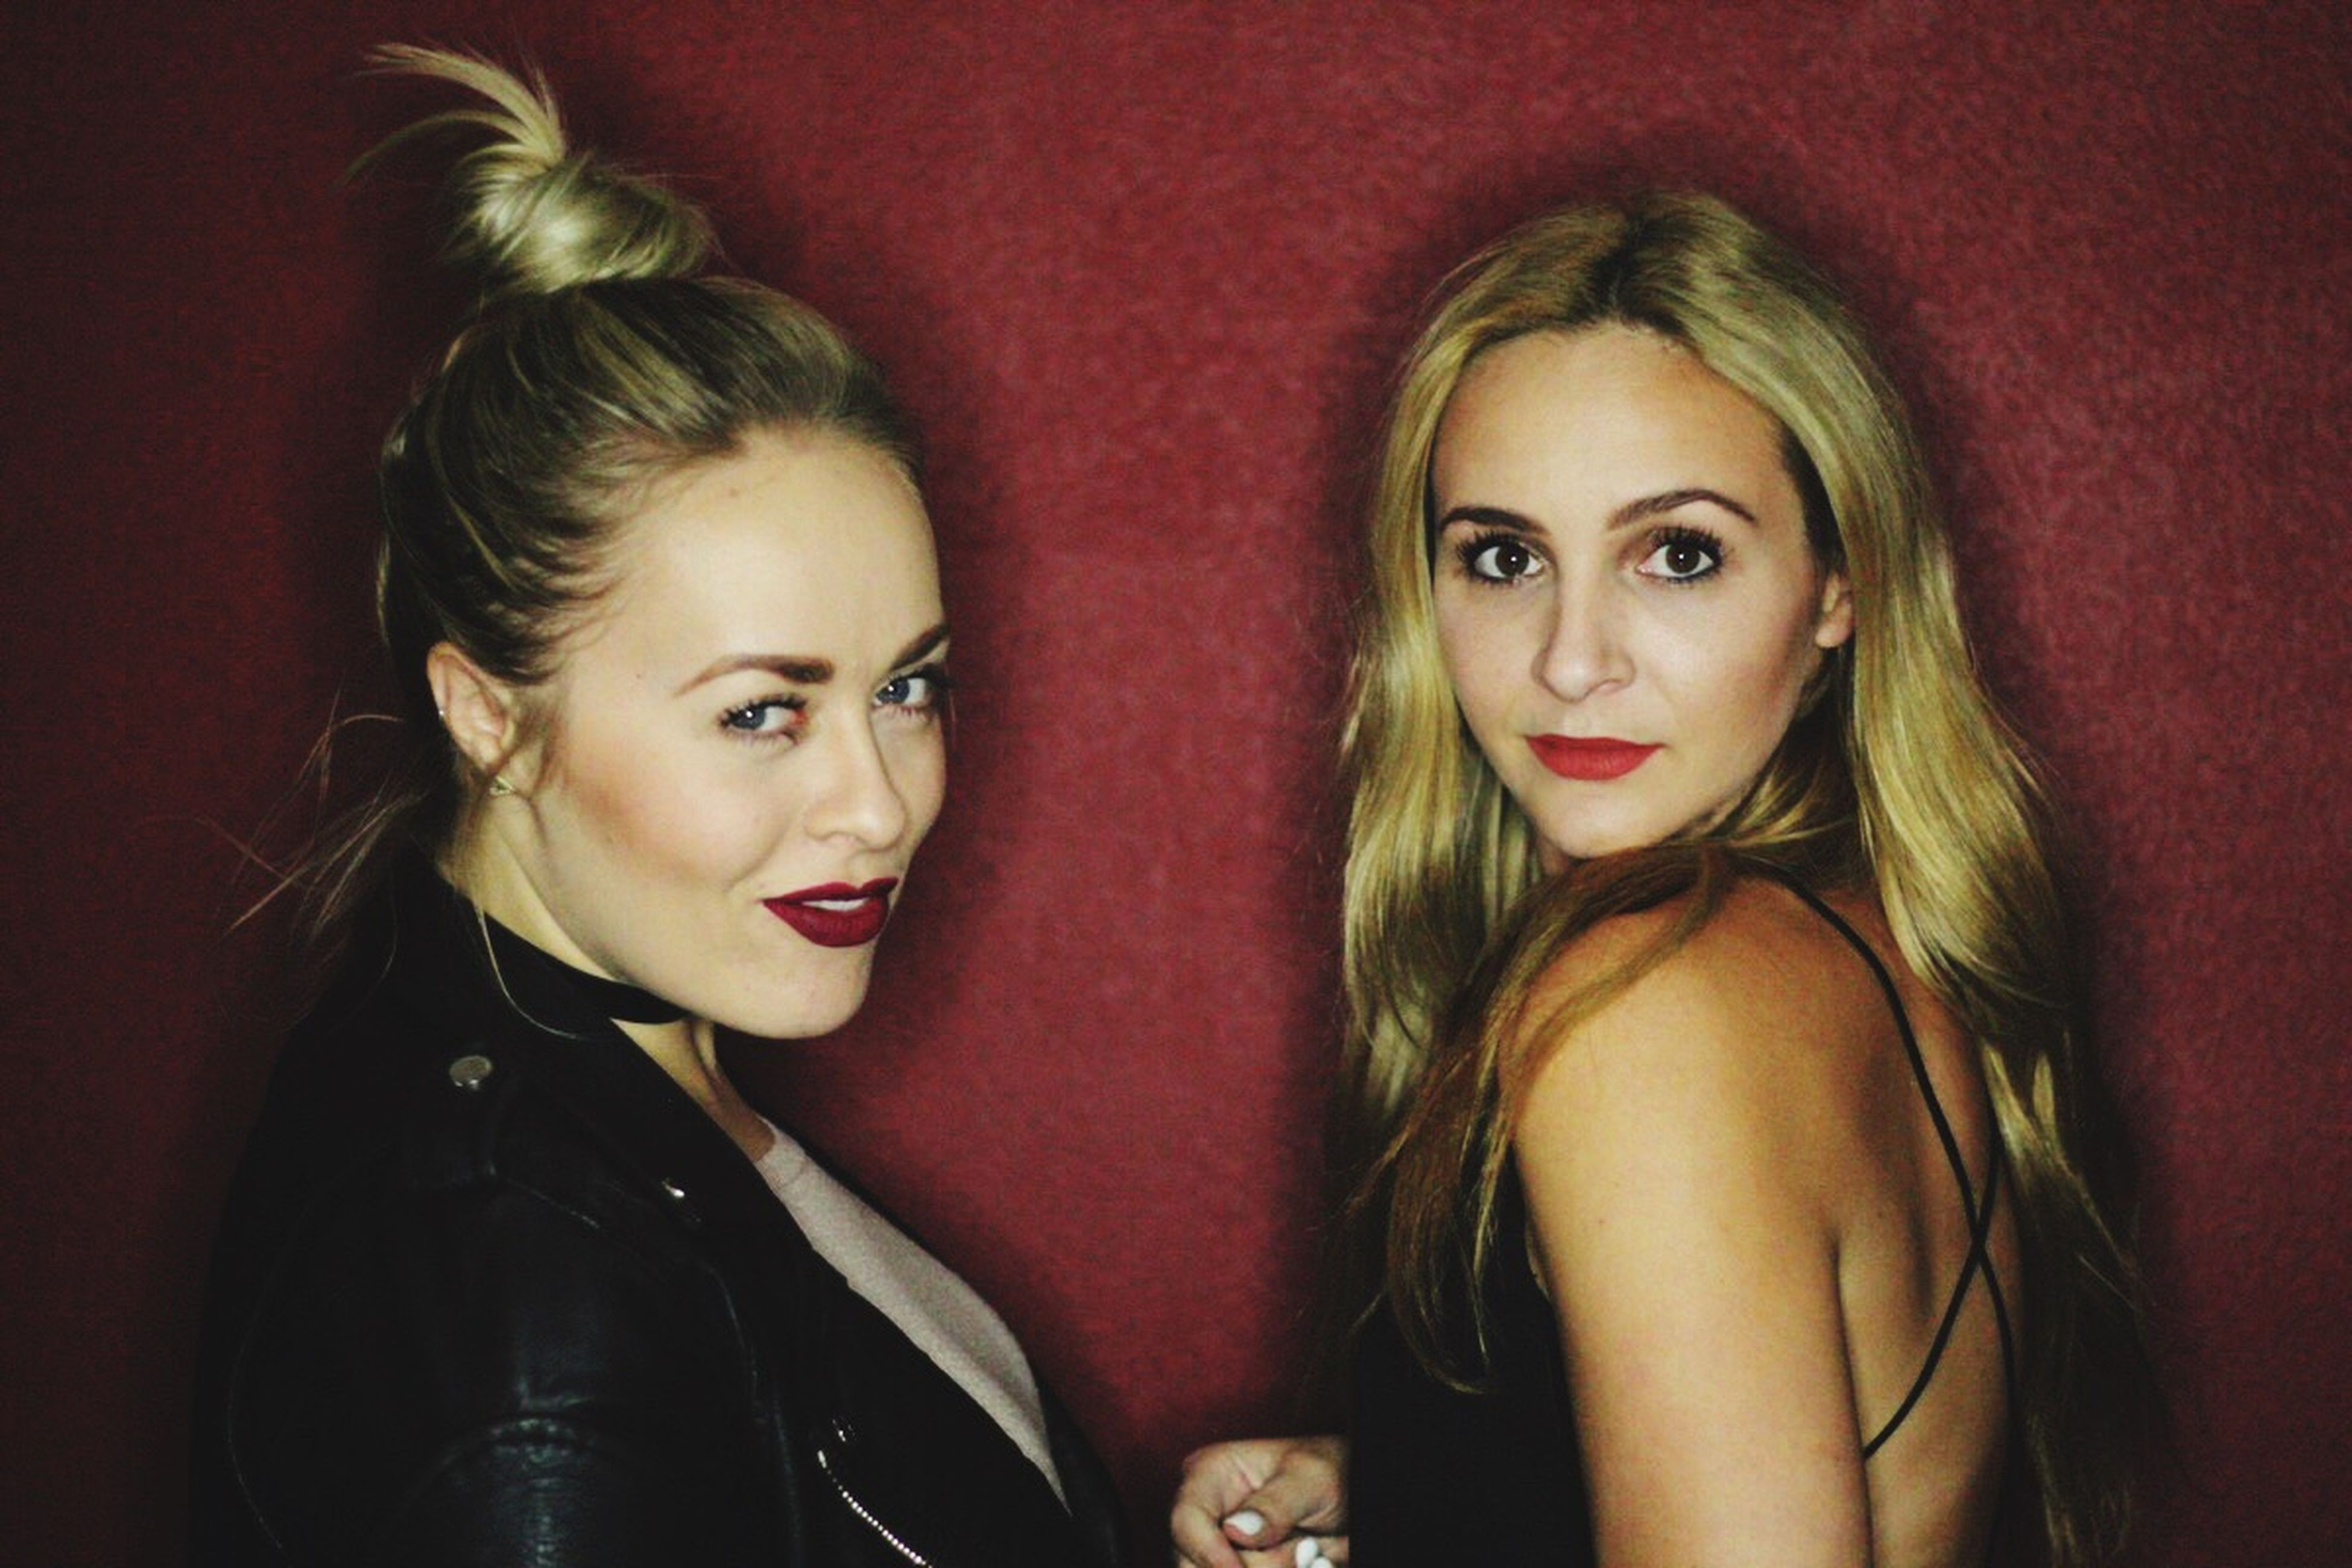 two people, friendship, beautiful people, glamour, fun, portrait, blond hair, red, beauty, make-up, people, nightlife, shiny, adult, nightclub, young adult, ladies' night, city, party - social event, city life, happiness, togetherness, women, beautiful woman, arrival, cheerful, only women, indoors, adults only, red carpet event, human body part